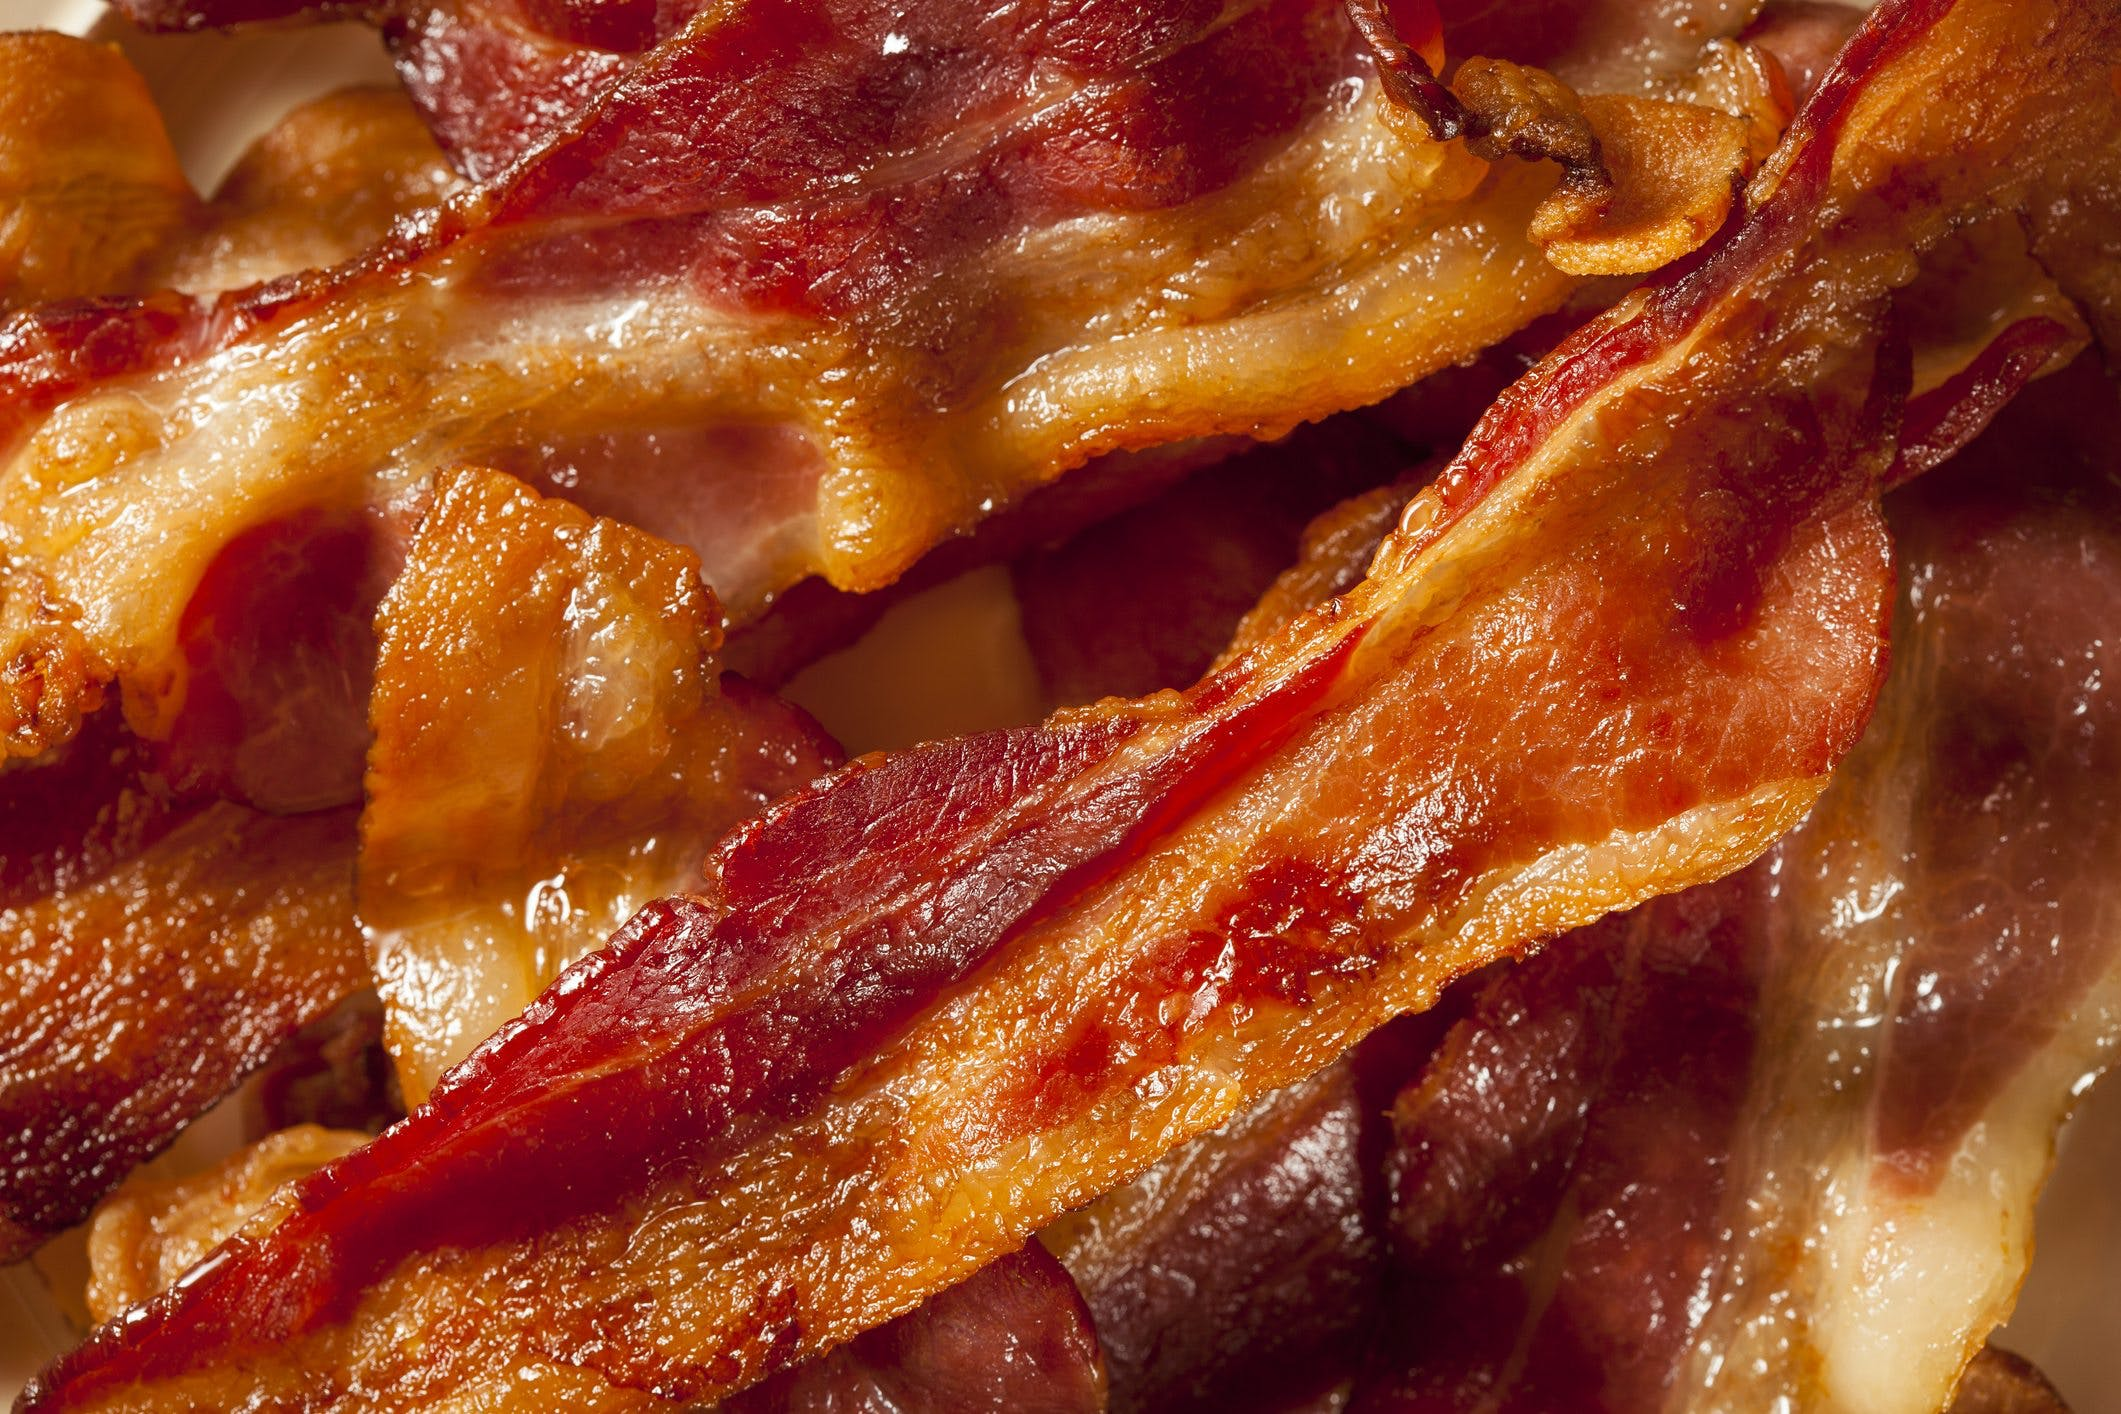 Oh No! A Bacon Shortage in the US. What Are We Going to Eat for Breakfast Now?